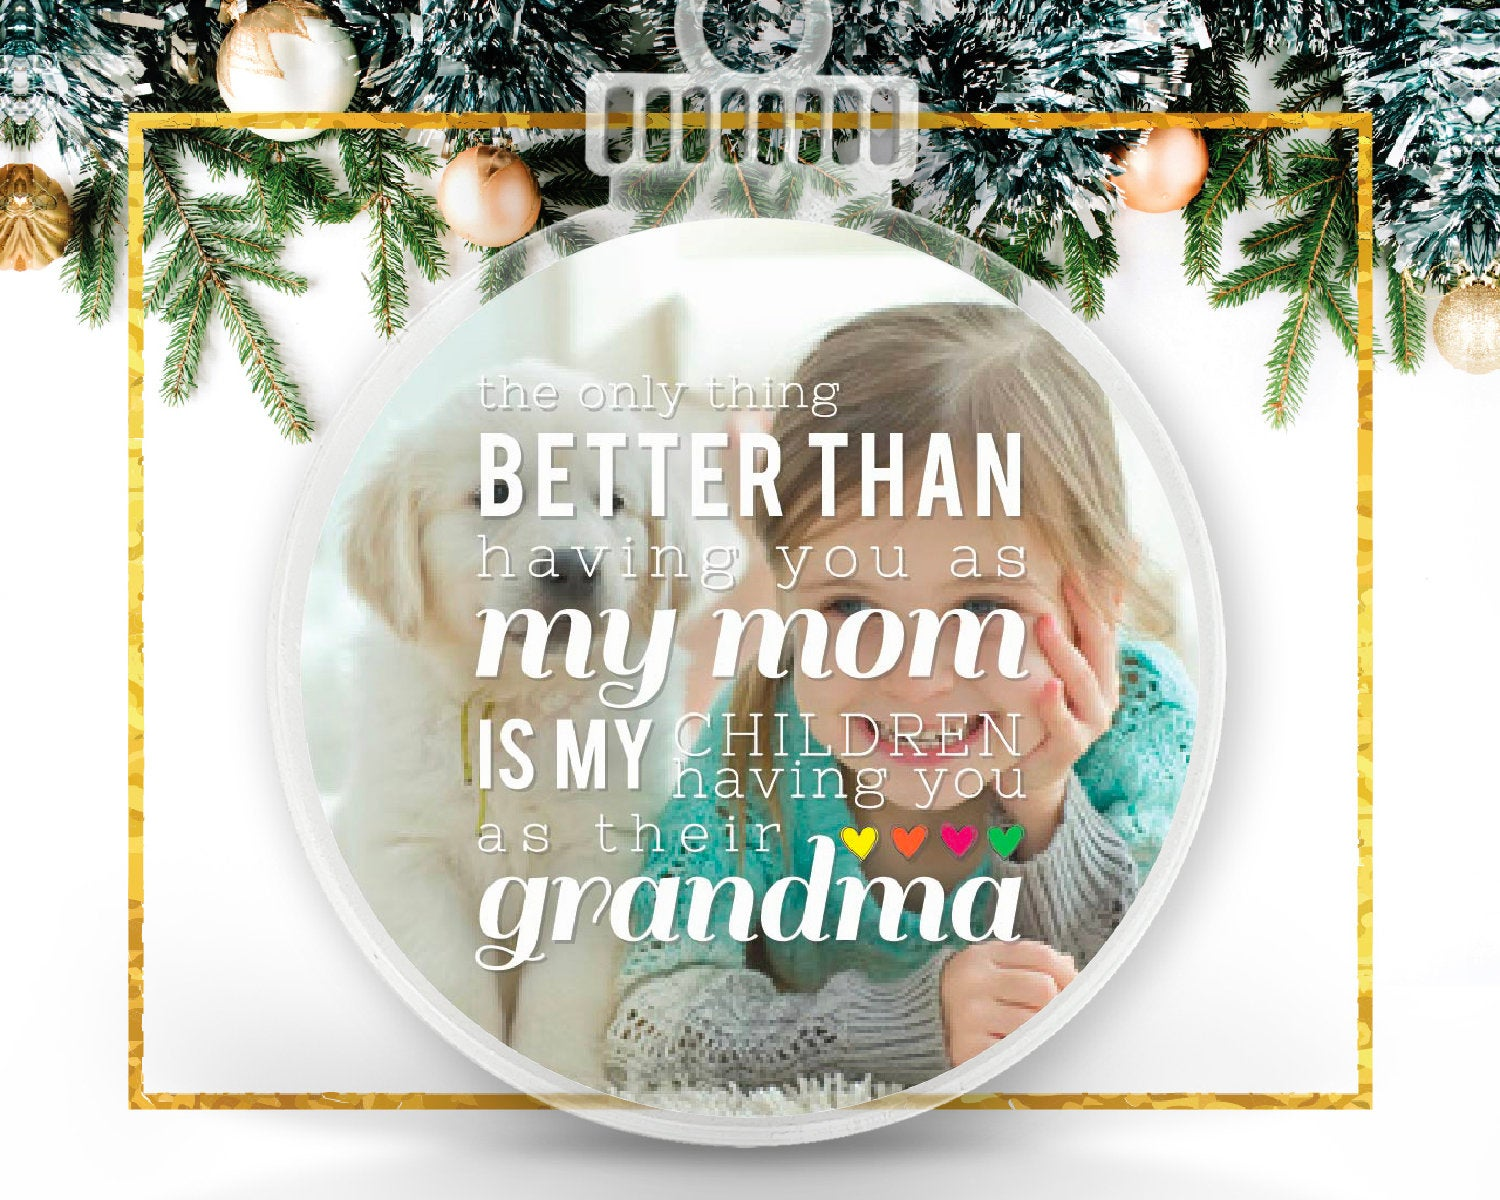 Grandma Personalized Photo Ornament